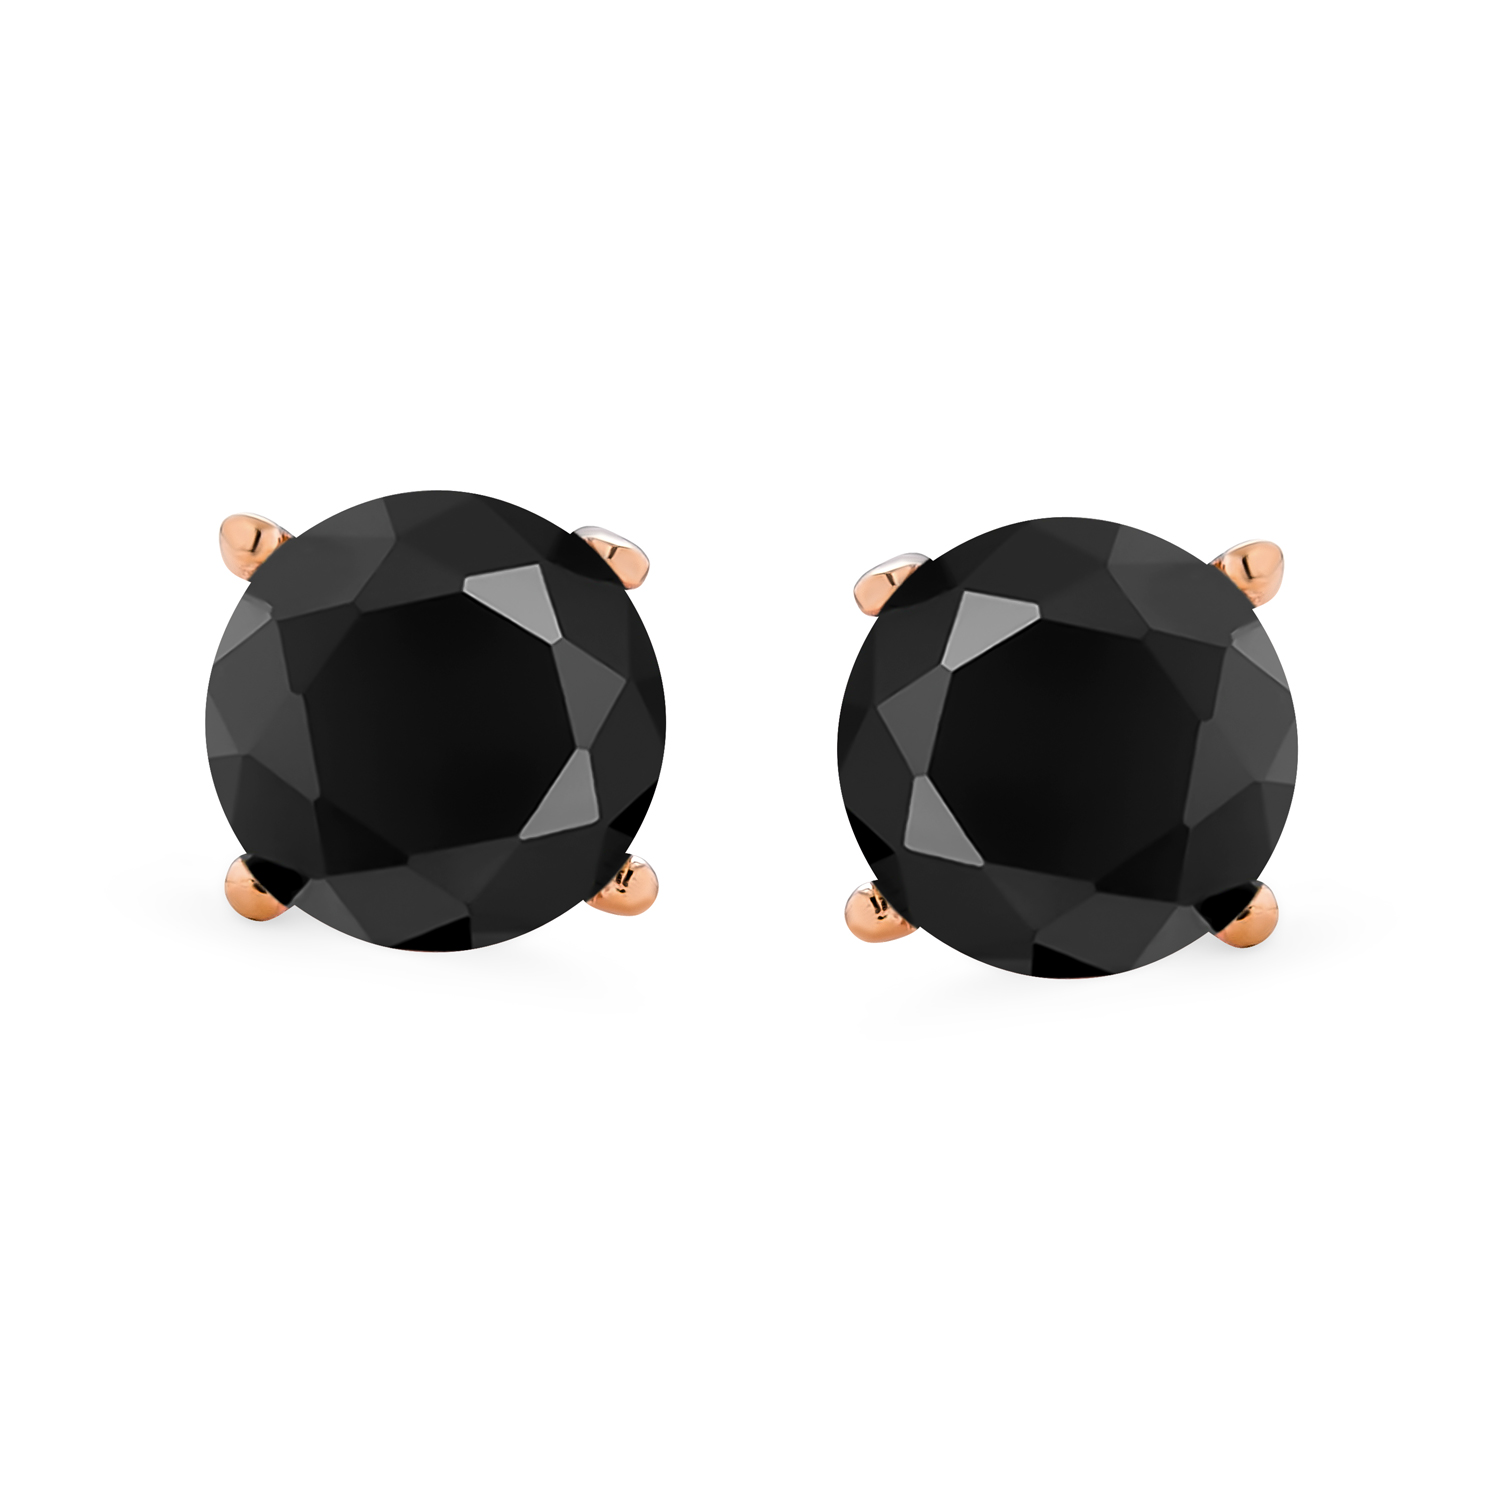 Skull earrings sterling silver black rhodium plated Small stud earrings screw back Fast shipping from USA